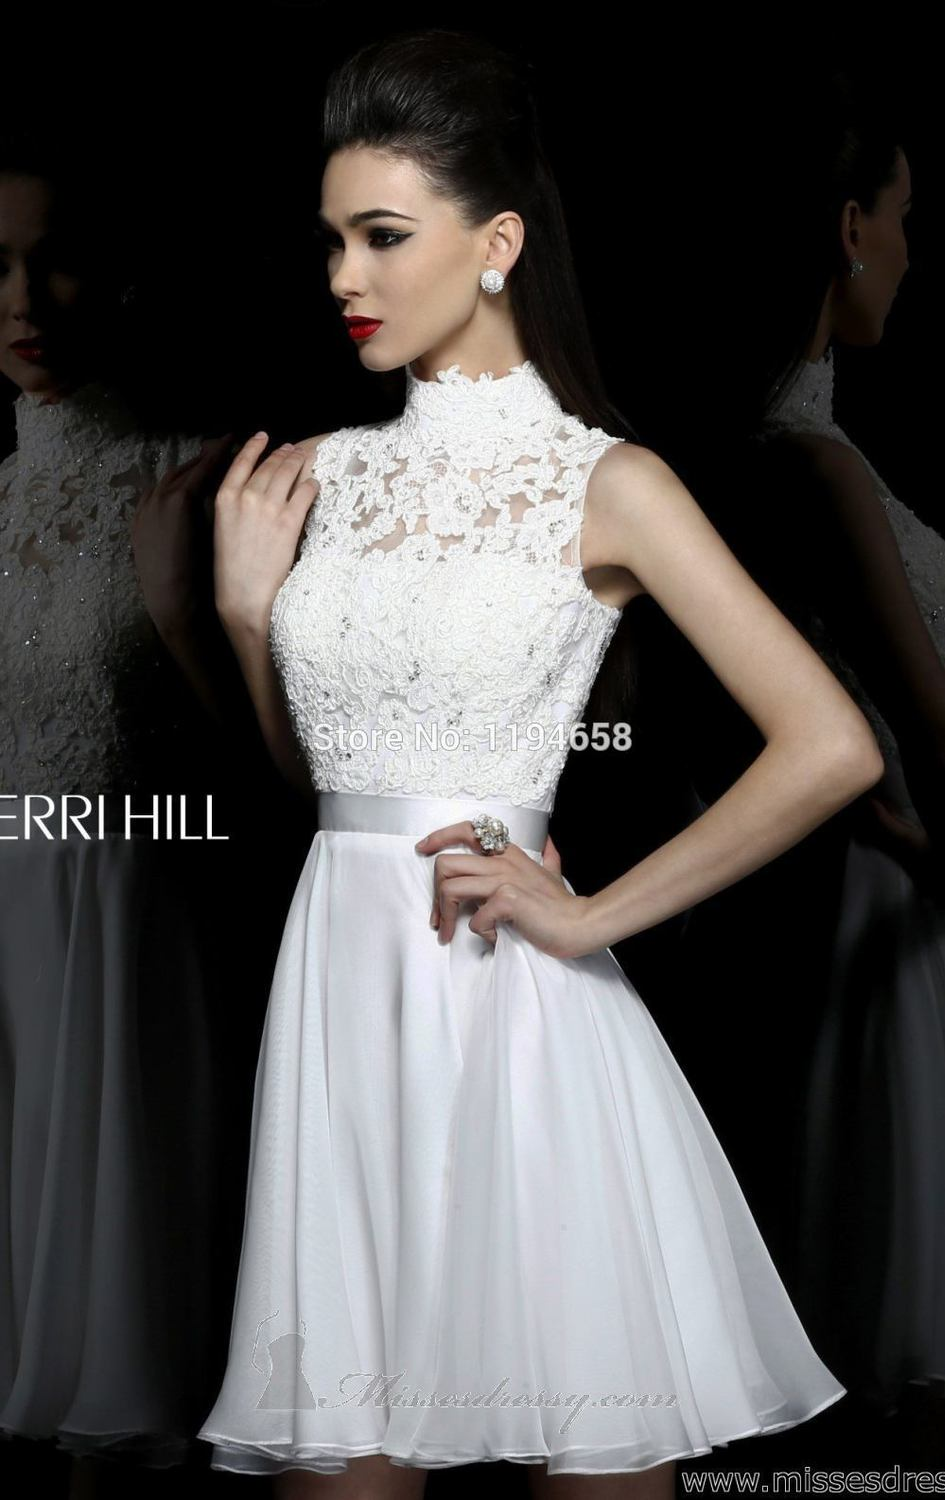 Cozy Free Shipping 2013 Sexy New Short Prom Dresses Pink Beaded Lace Neck Chiffon Graduation Dresses Graduation Forever 21 Dresses Graduation Size wedding dress White Dresses For Graduation